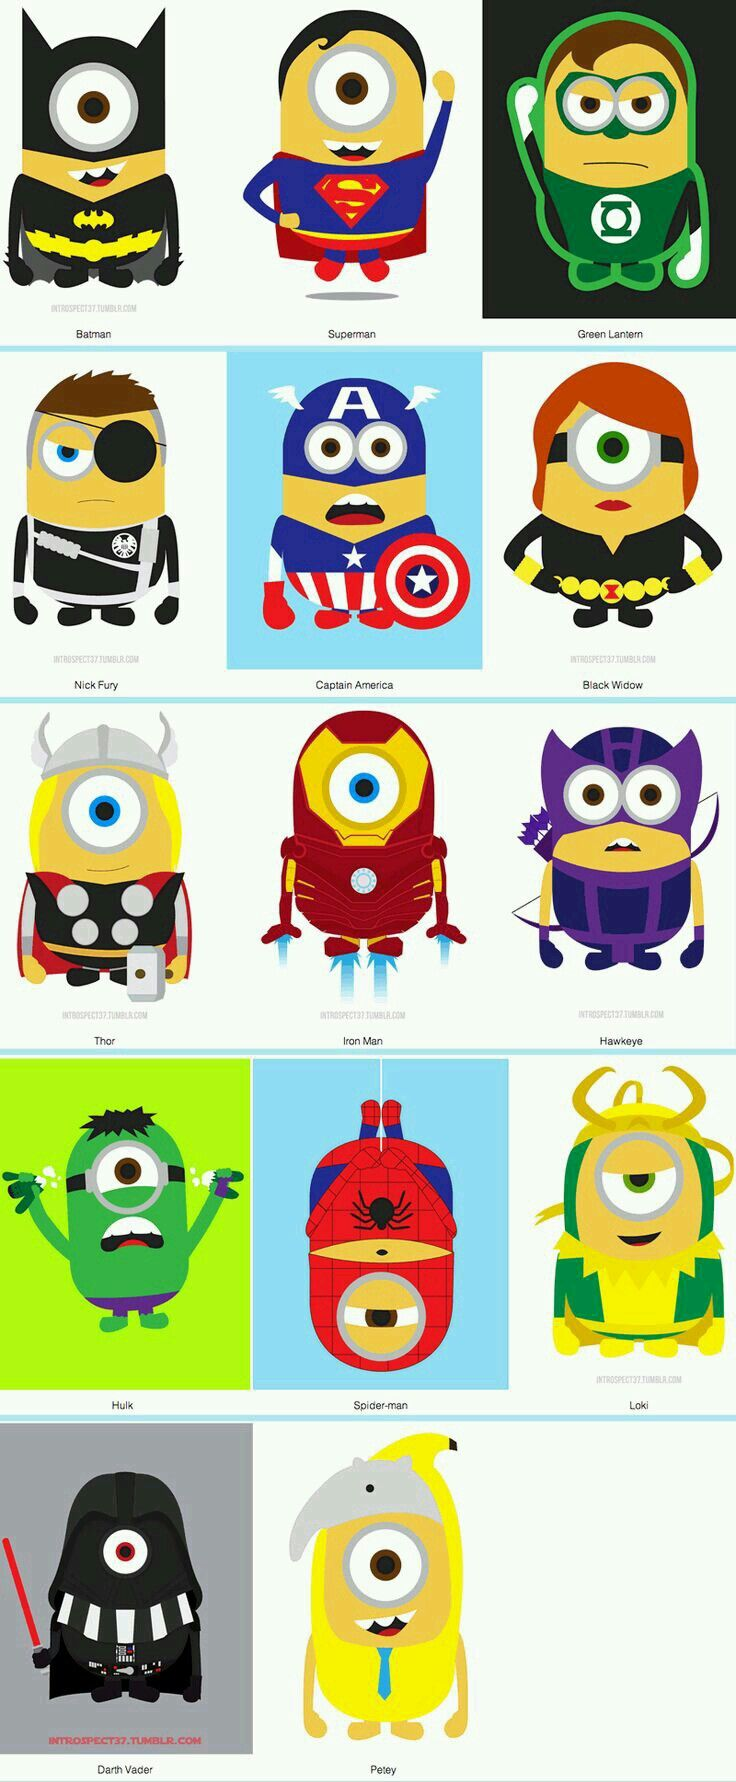 Pin by Yoon Soh on birthday related Minions, Minion